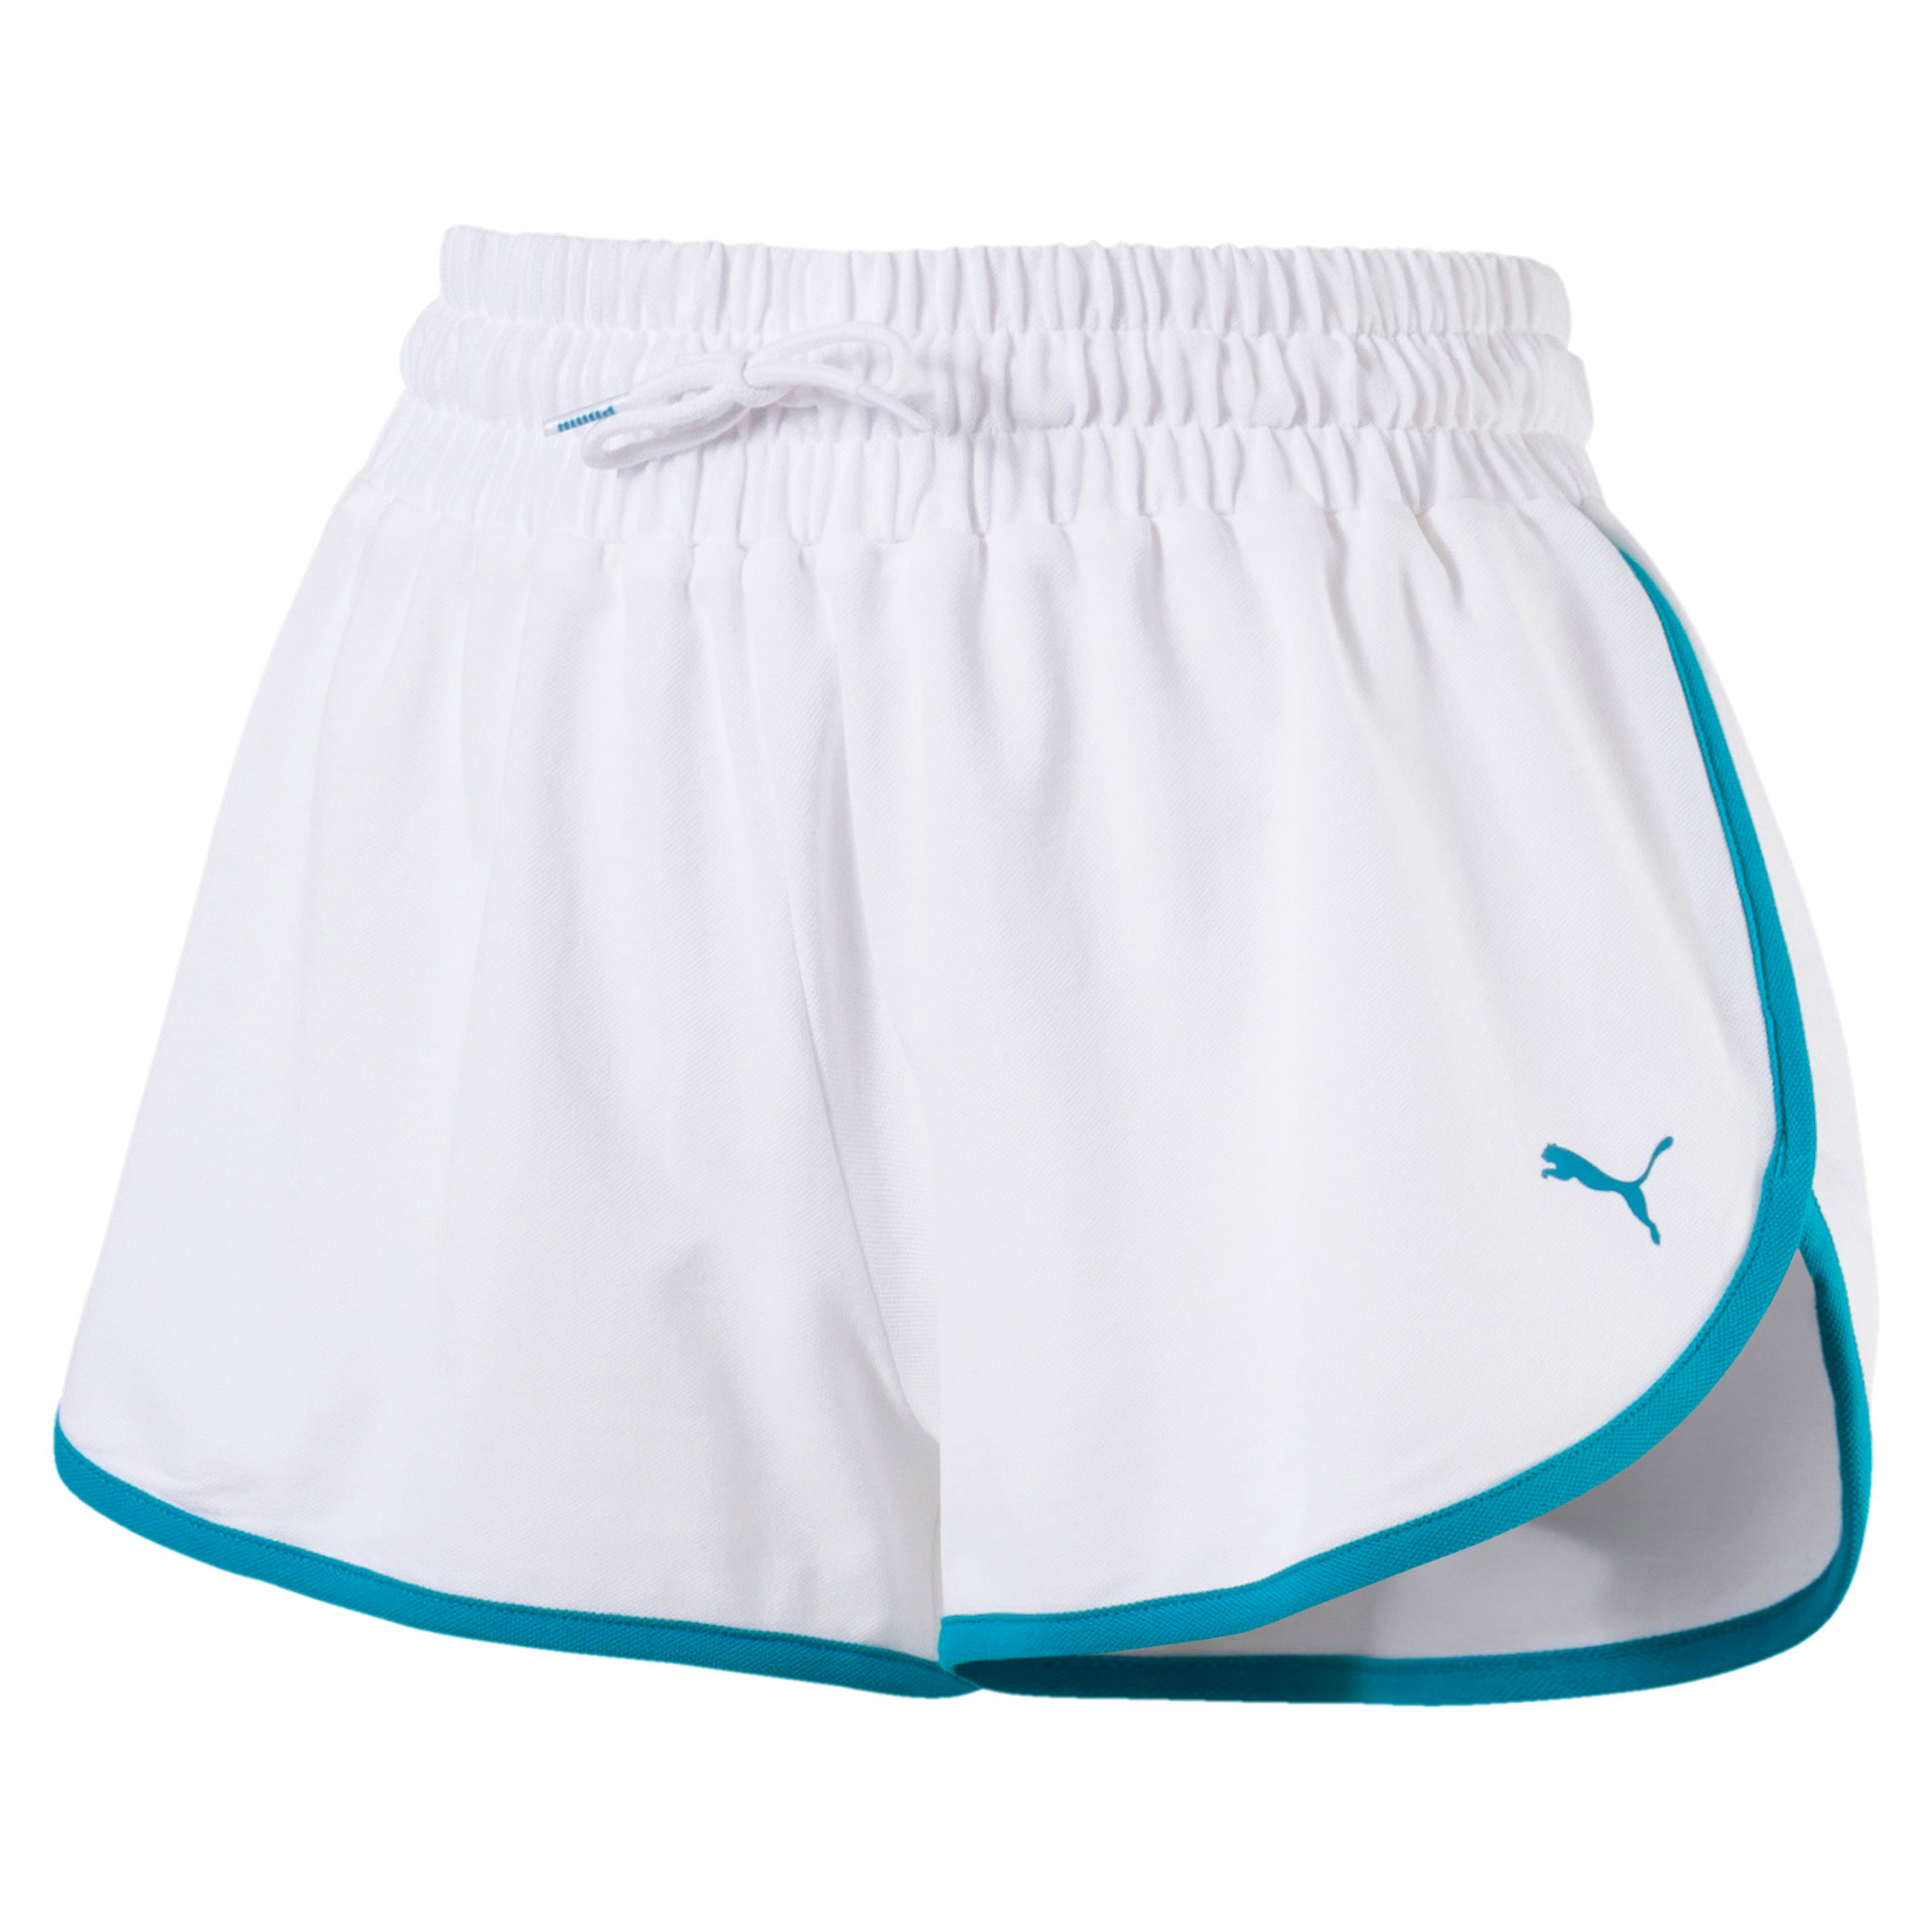 Thumbnail 2 of Women's Summer Shorts, Puma White, medium